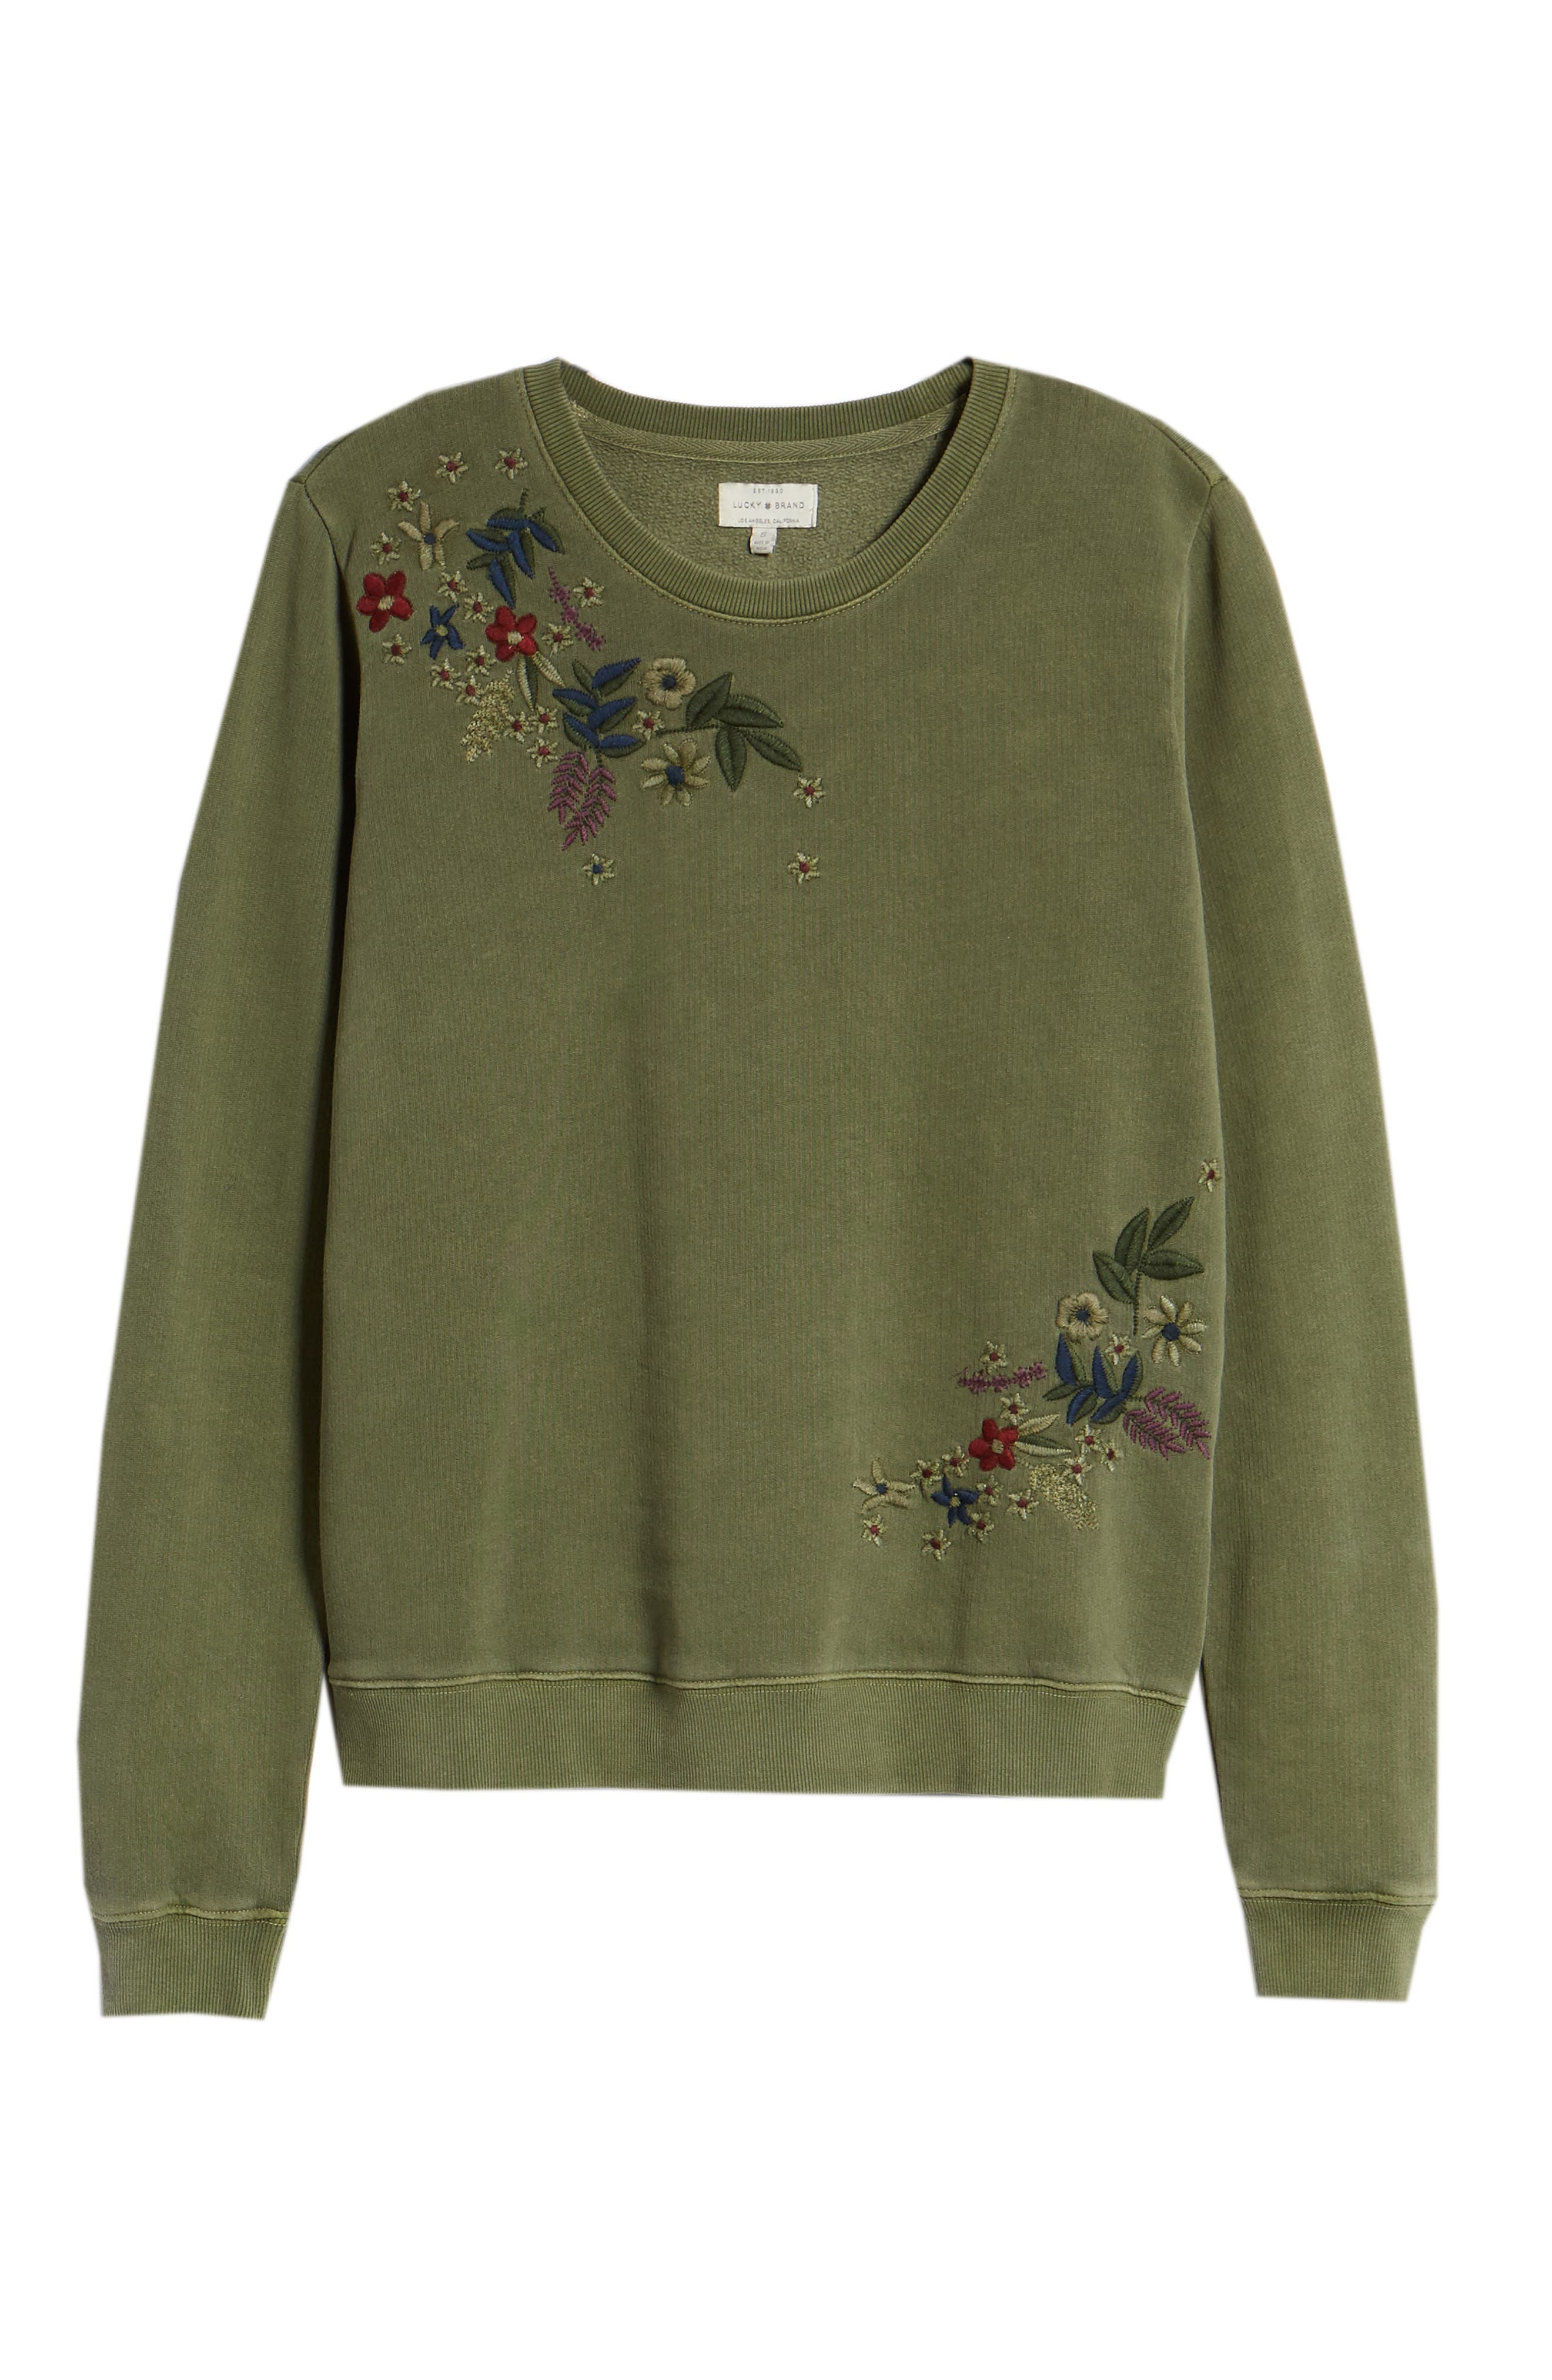 Embroidered Flowers Sweatshirt,                             Alternate thumbnail 6, color,                             OLIVE KNIT